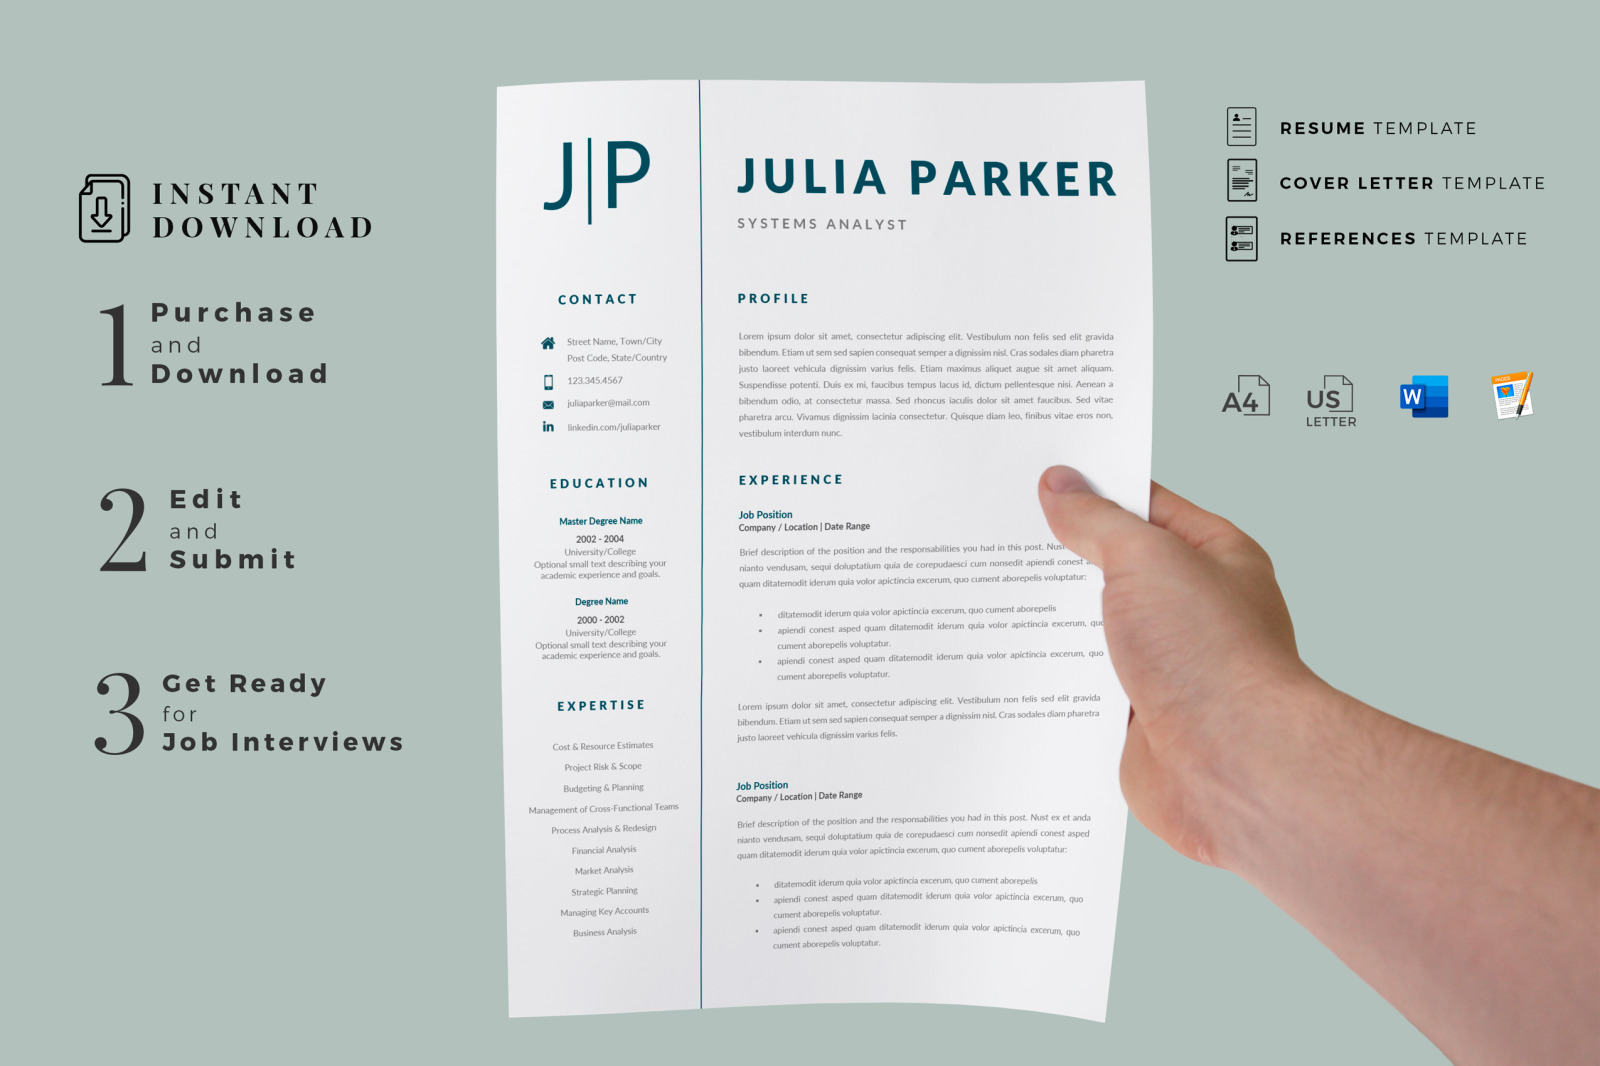 Cover Letter Template for Resume, References and ...